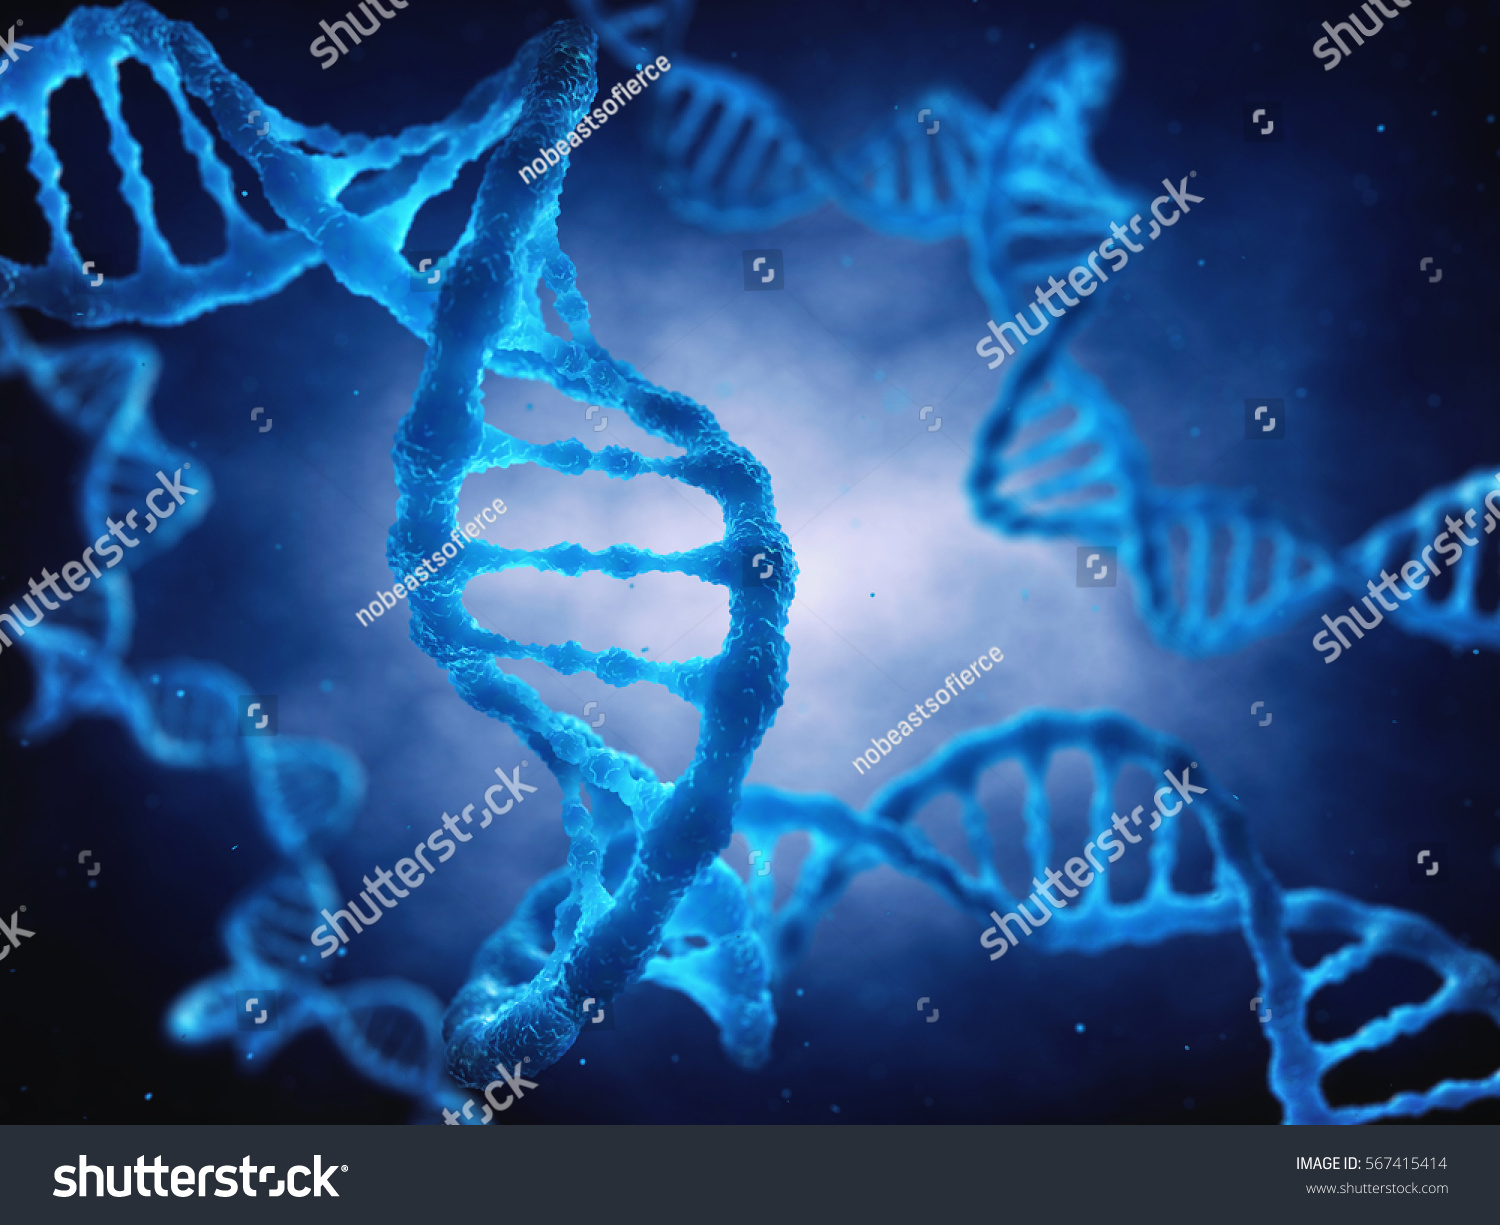 Dna double helix molecule genetic blueprint ilustracin de dna double helix molecule genetic blueprint ilustracin de stock567415414 shutterstock malvernweather Choice Image